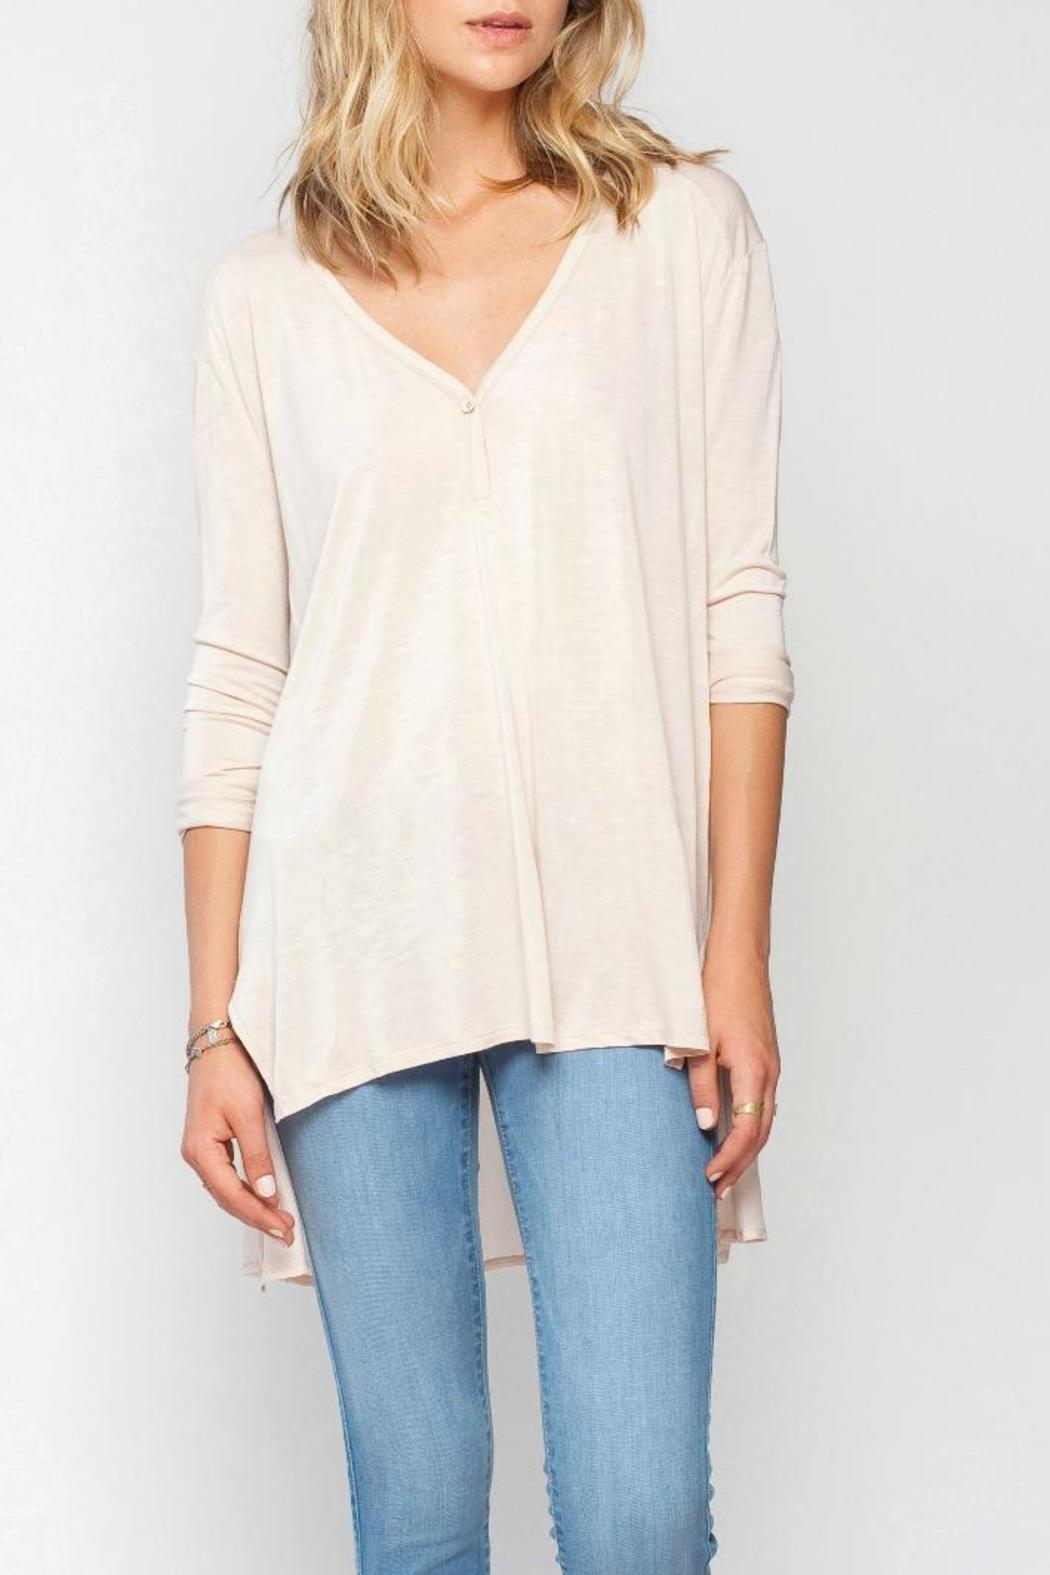 Gentle Fawn Oversized Steam Top - Main Image